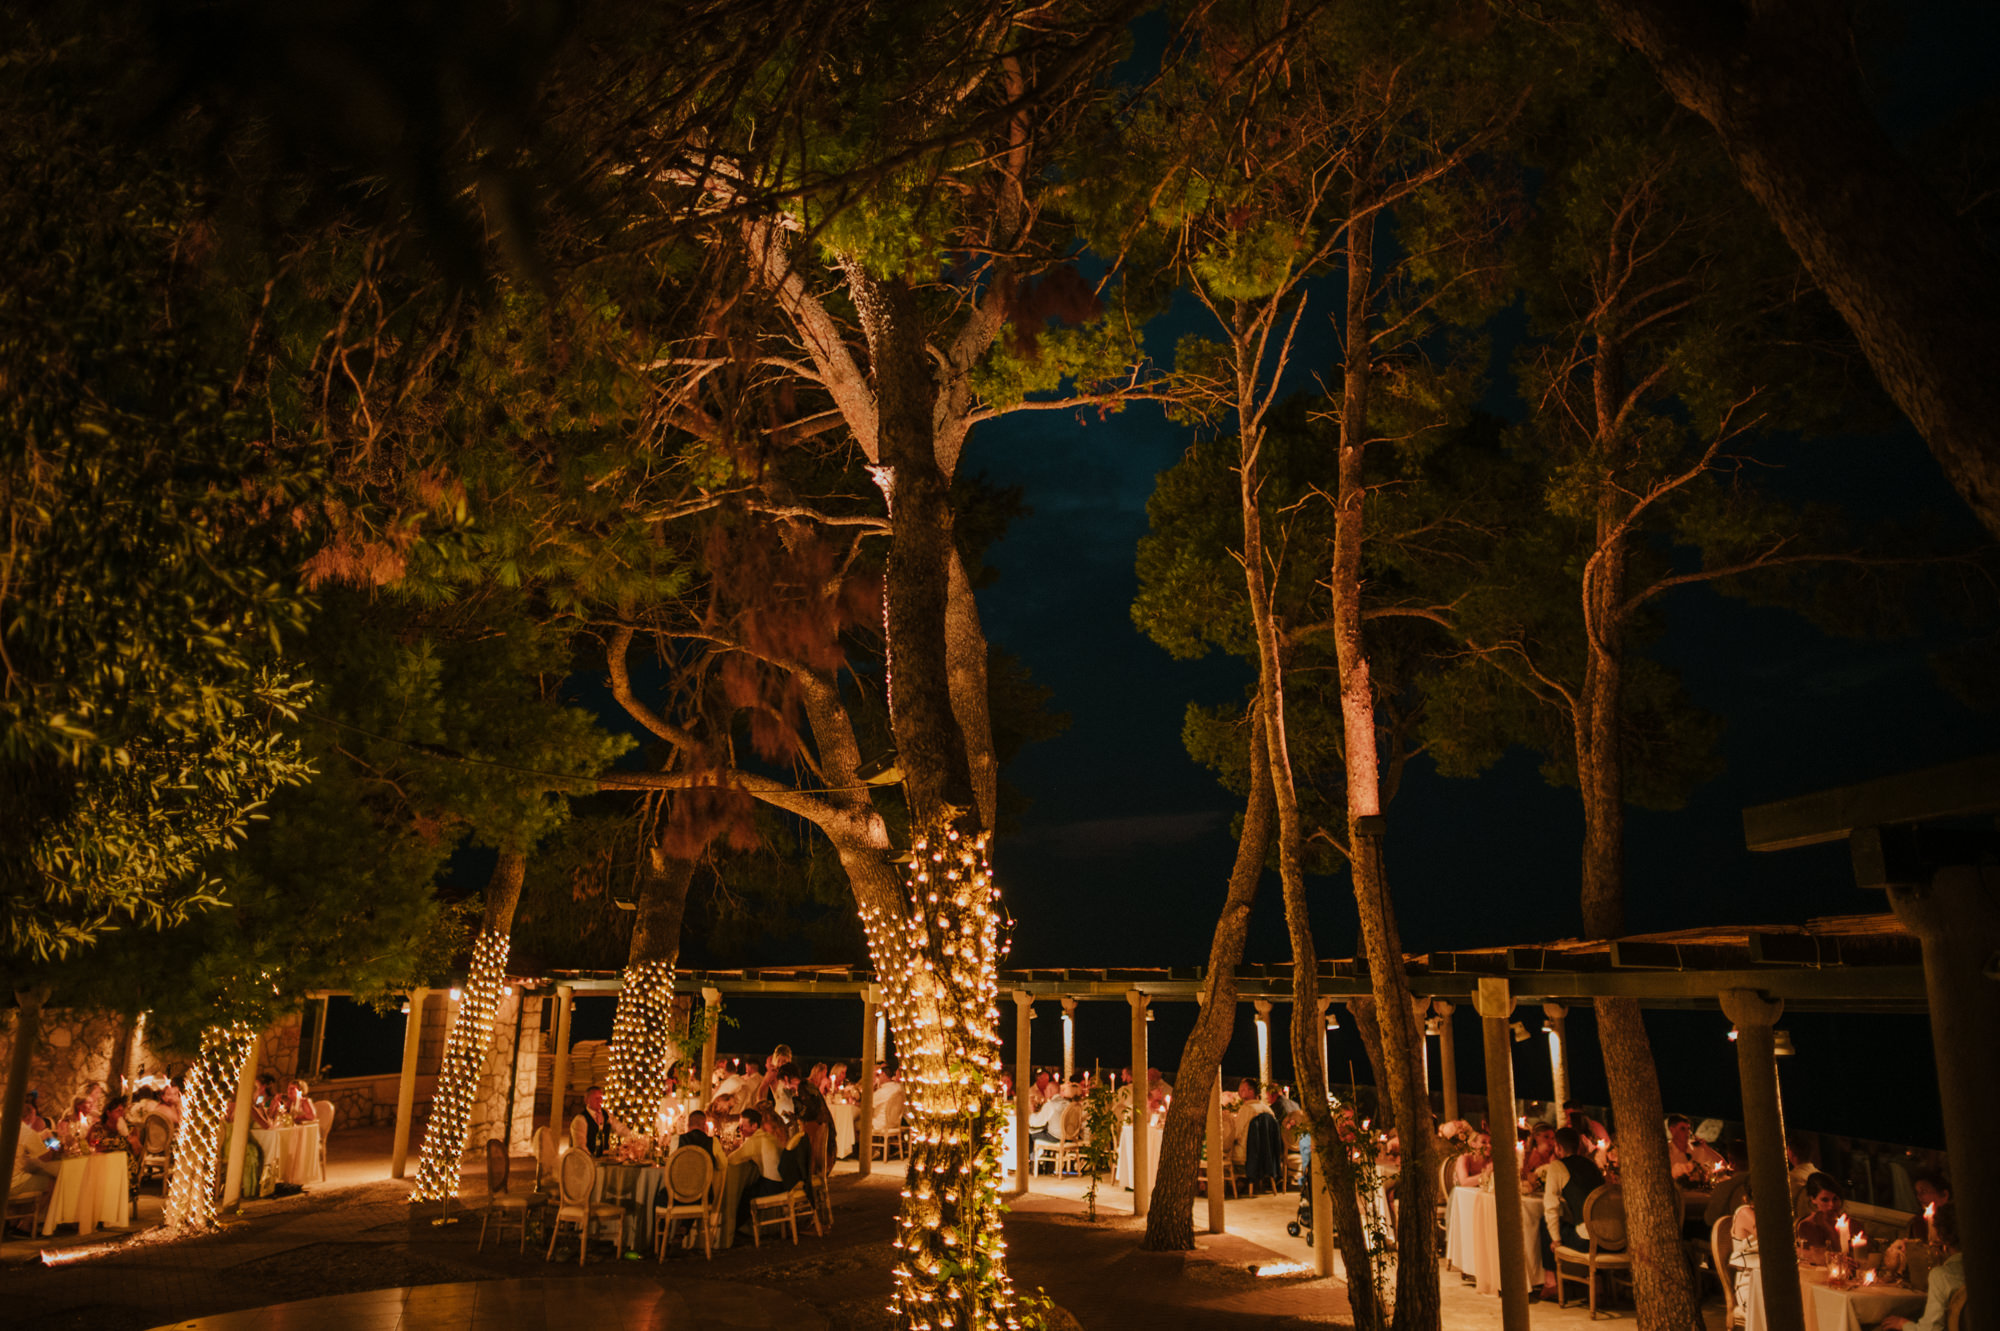 This photo shows Villa Rose restaurant on Kolocep island in the evening ready for a wedding reception. There are string lights on the trees and tables all around.